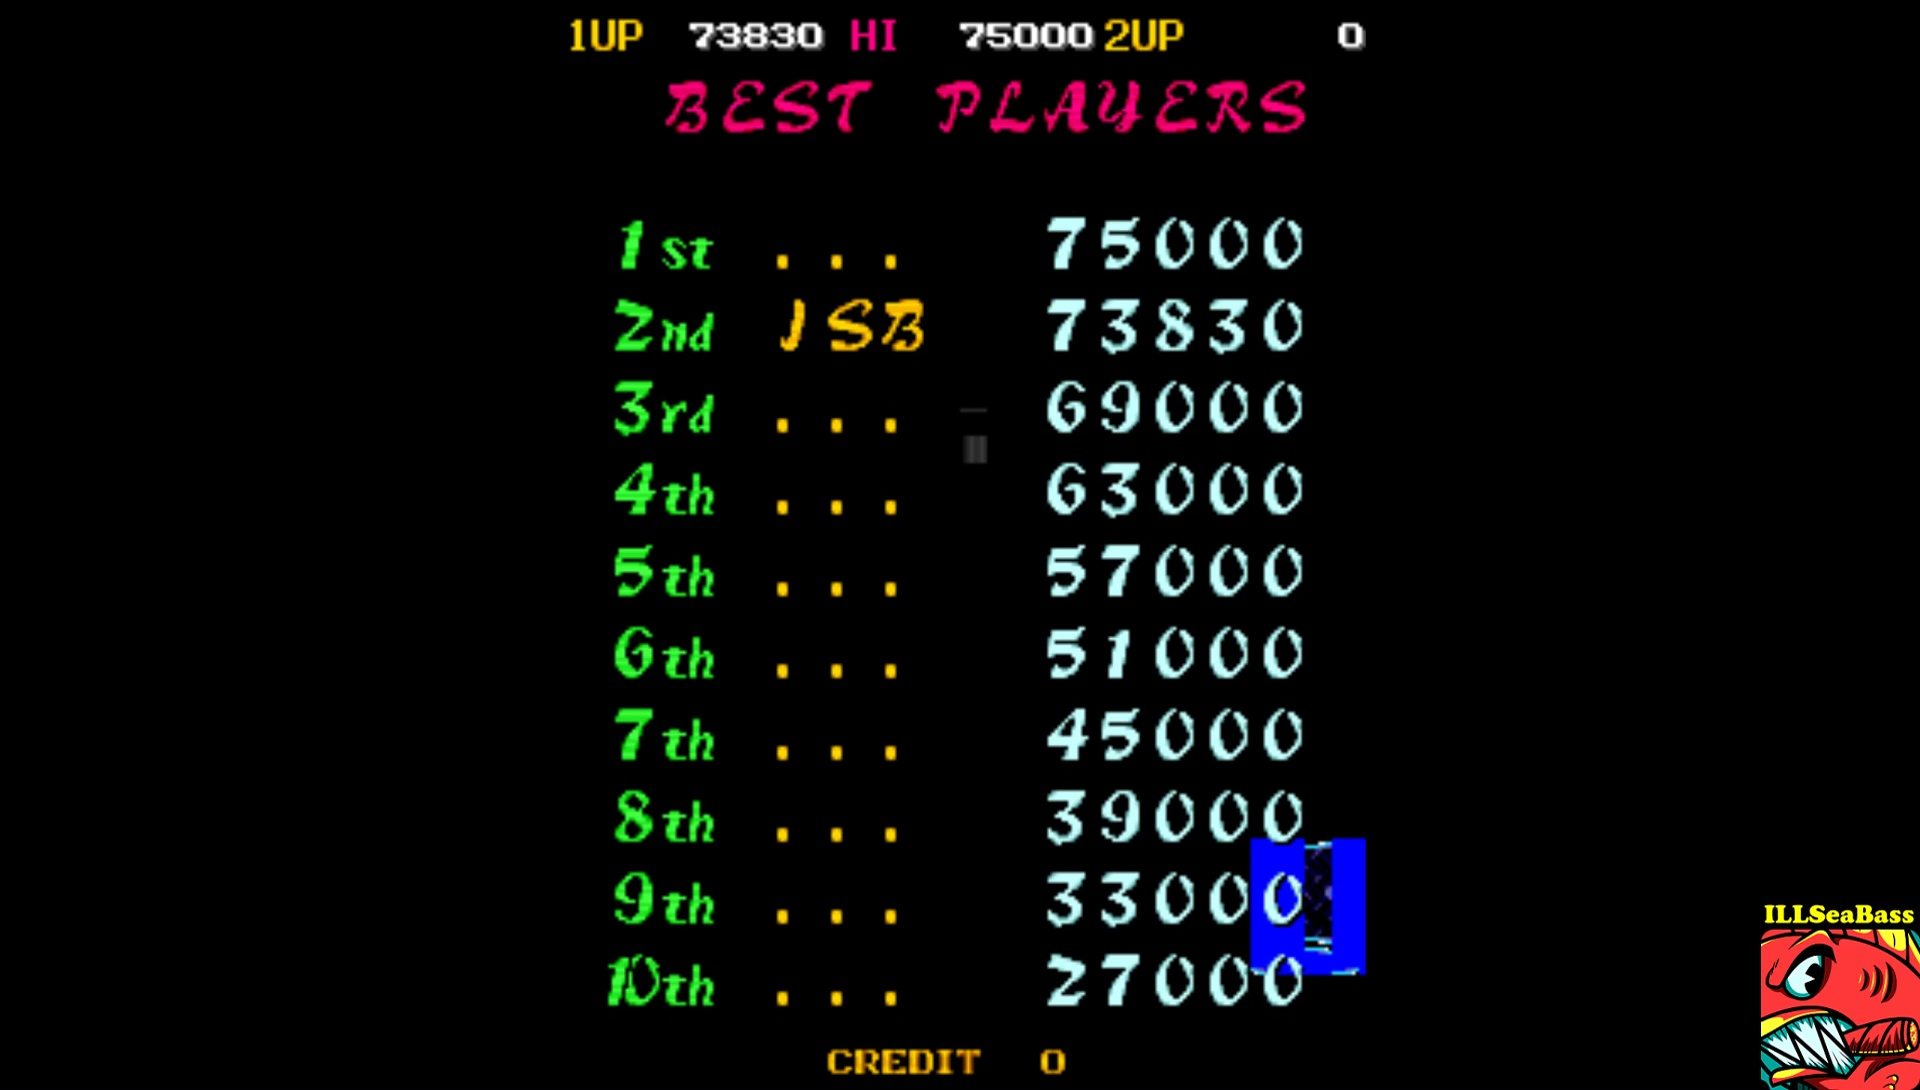 ILLSeaBass: Ghox [ghox] (Arcade Emulated / M.A.M.E.) 73,830 points on 2017-09-05 23:20:24